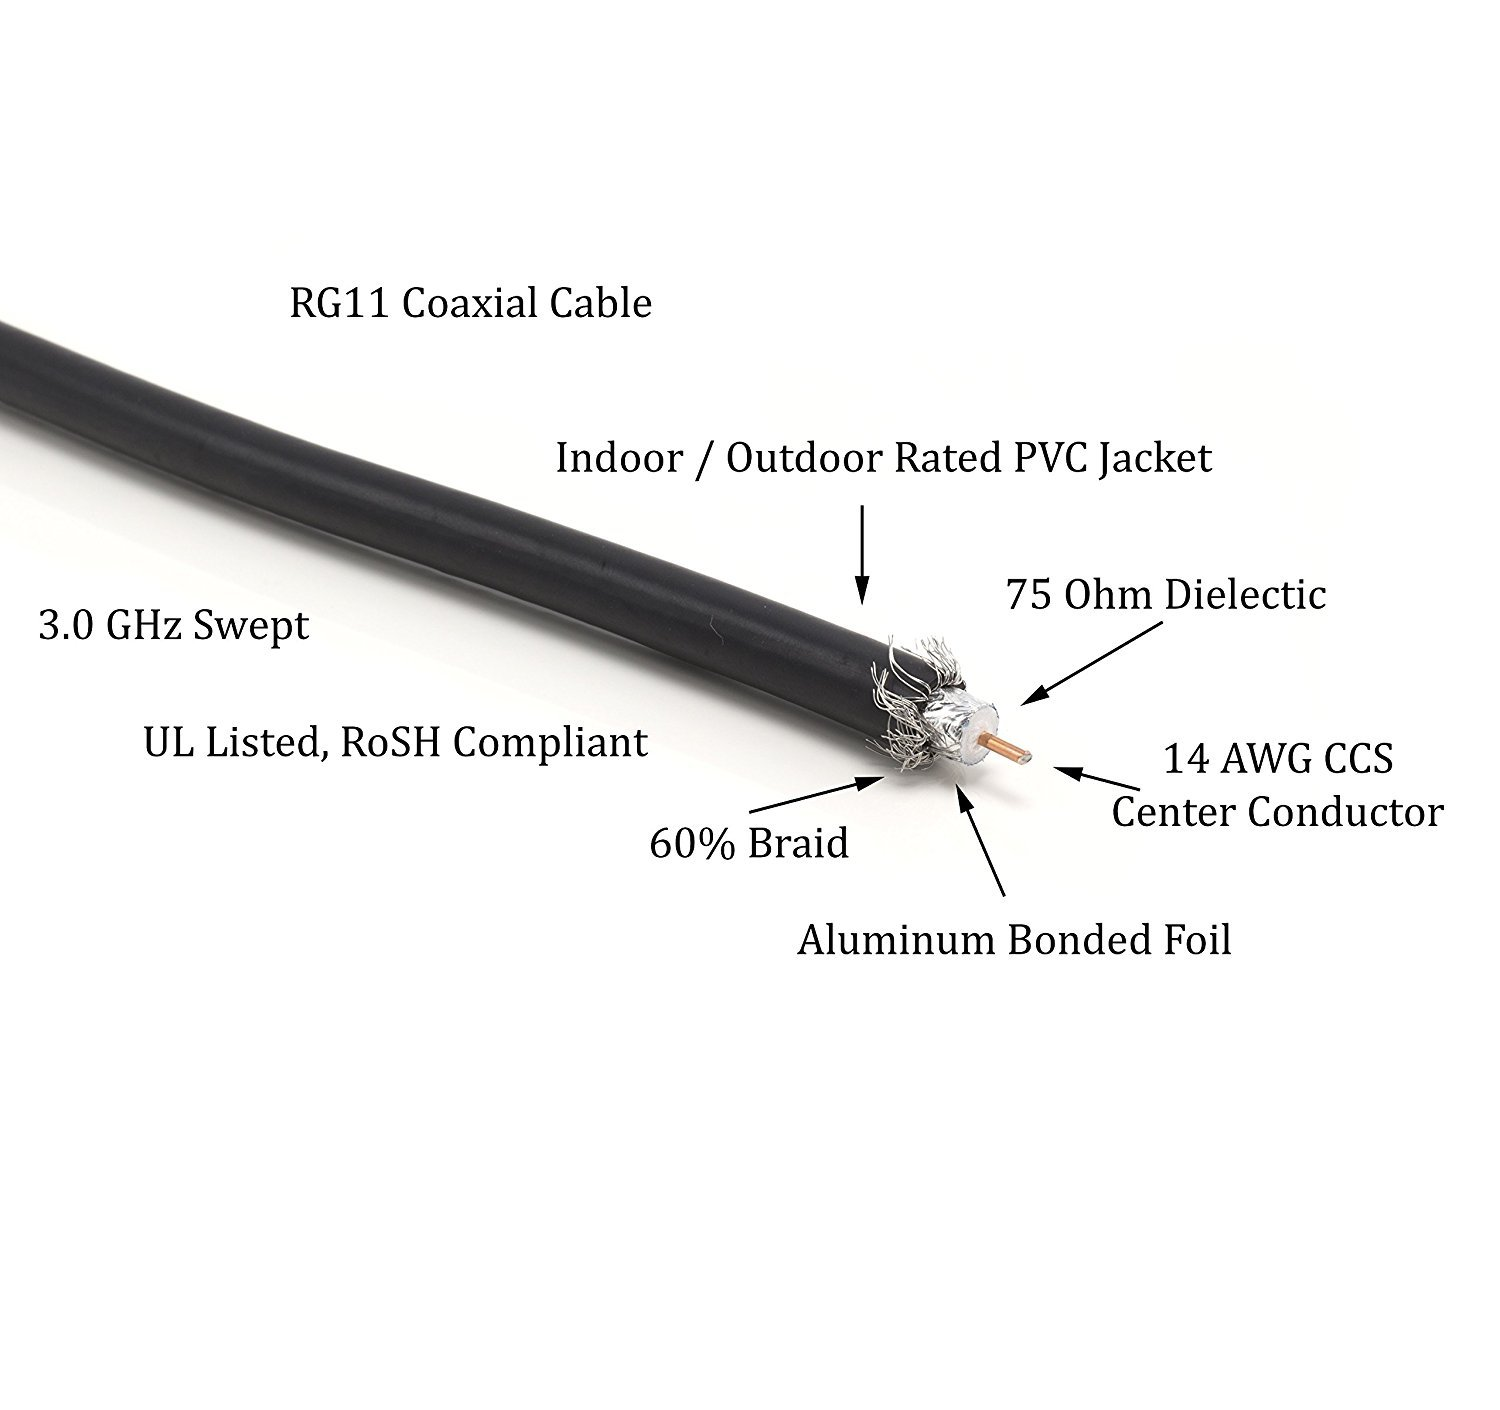 Amazon.com: THE CIMPLE CO - 25 Foot RG-11 Coaxial Cable, Made in The USA | F Type Cable High Definition with RG11 Coax Compression Connectors – (Black): ...